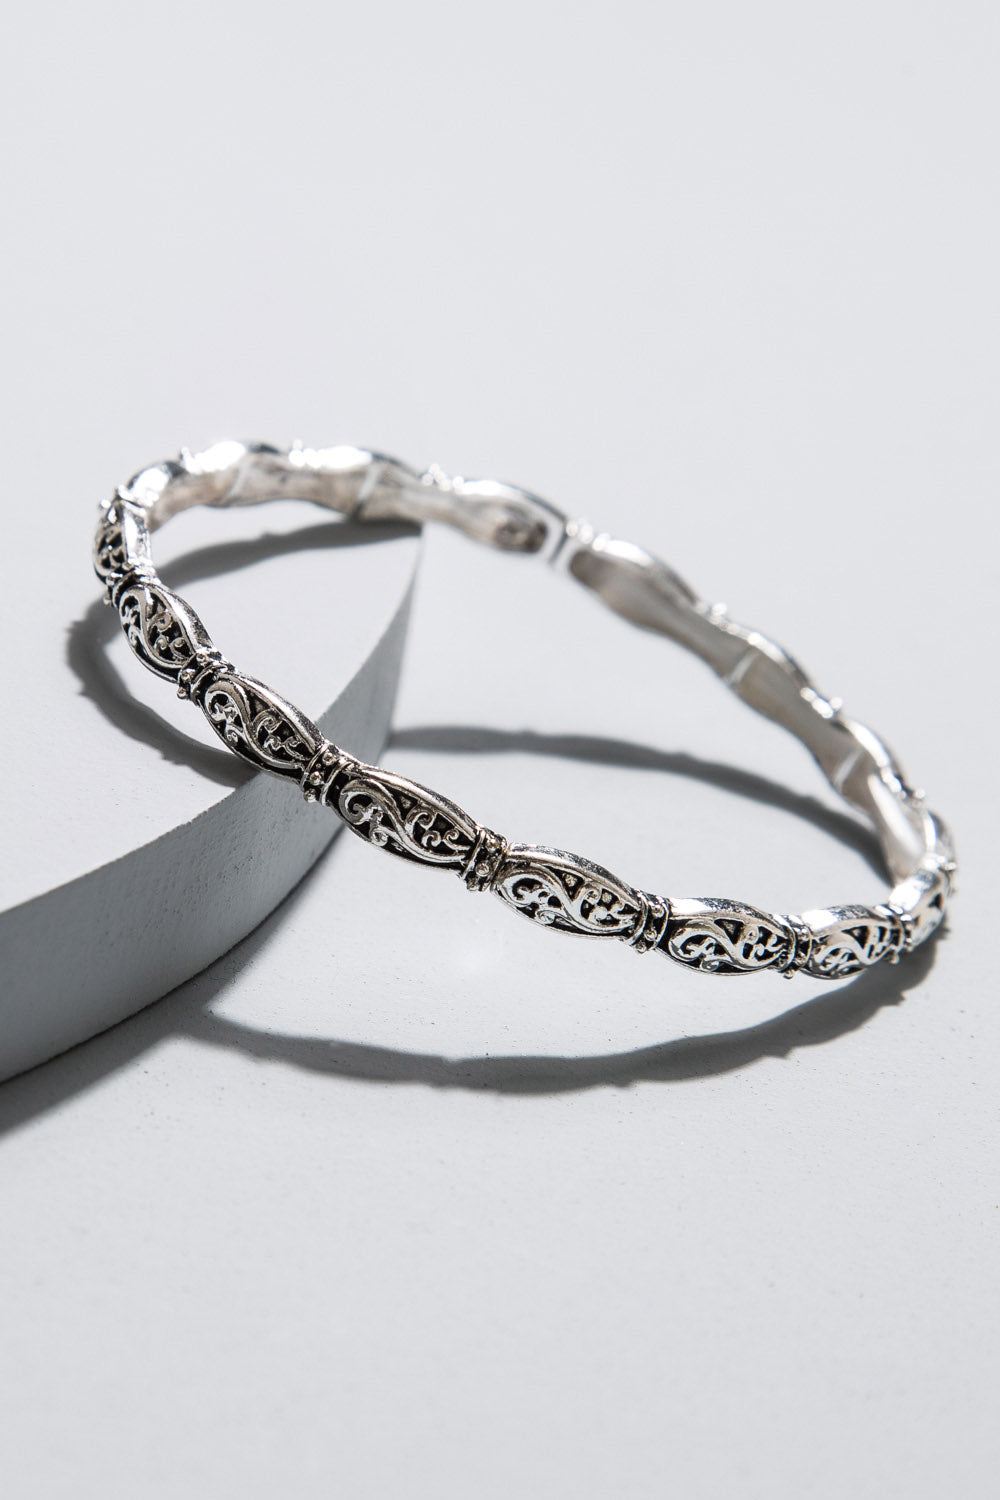 Type 2 Peace Keeping Bracelet